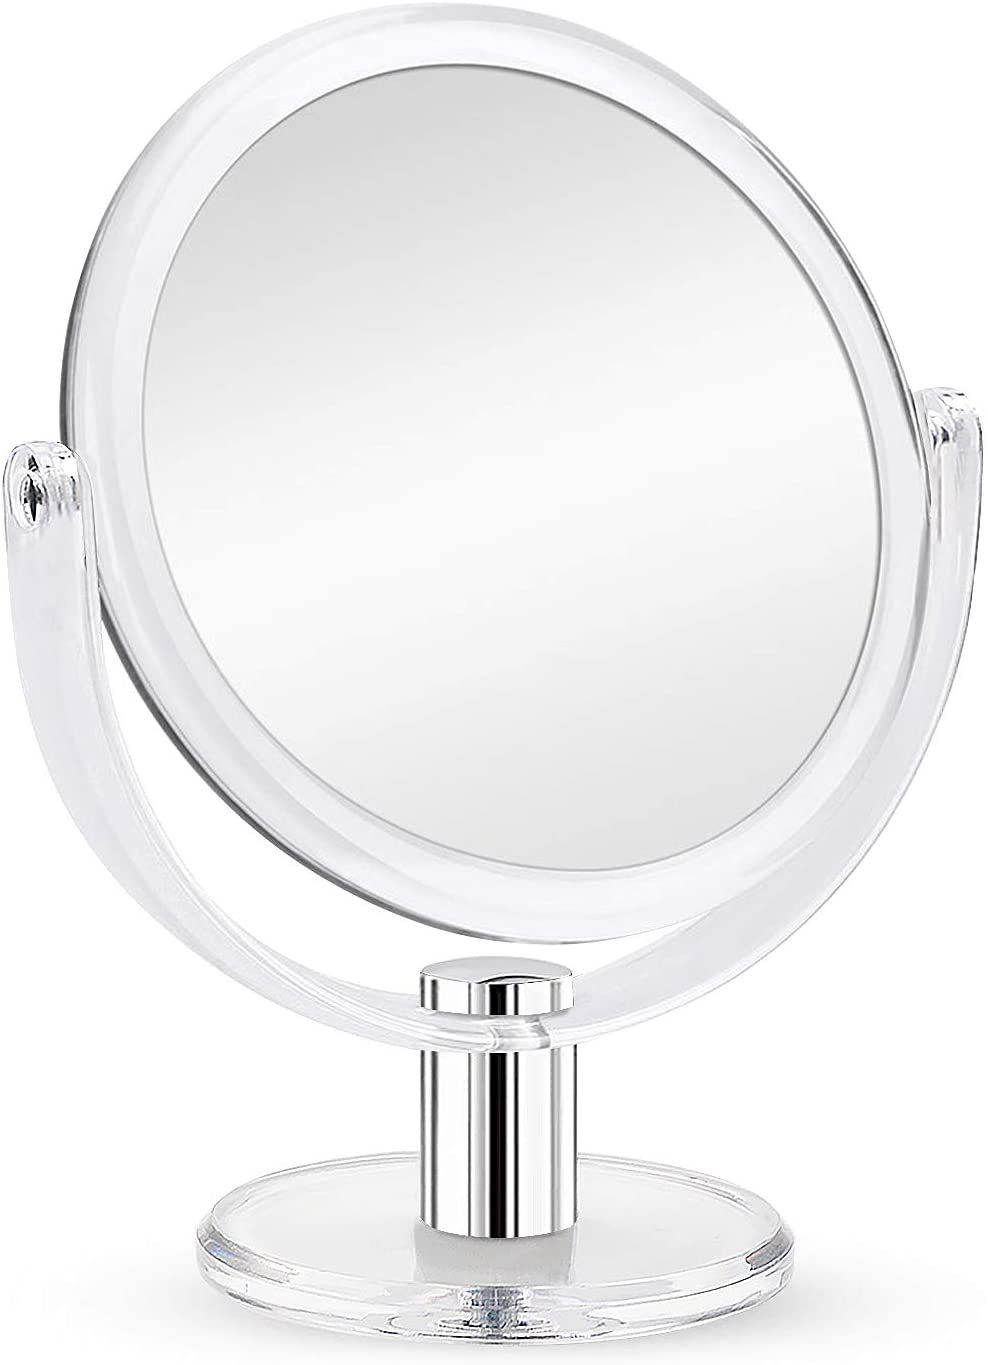 Fabuday Magnifying Makeup Mirror Double Sided 1x 10x Magnification Mirror Table Top Vani Amazon Affiliate Link C Magnification Mirror Makeup Mirror Mirror 15x magnifying mirror with lights